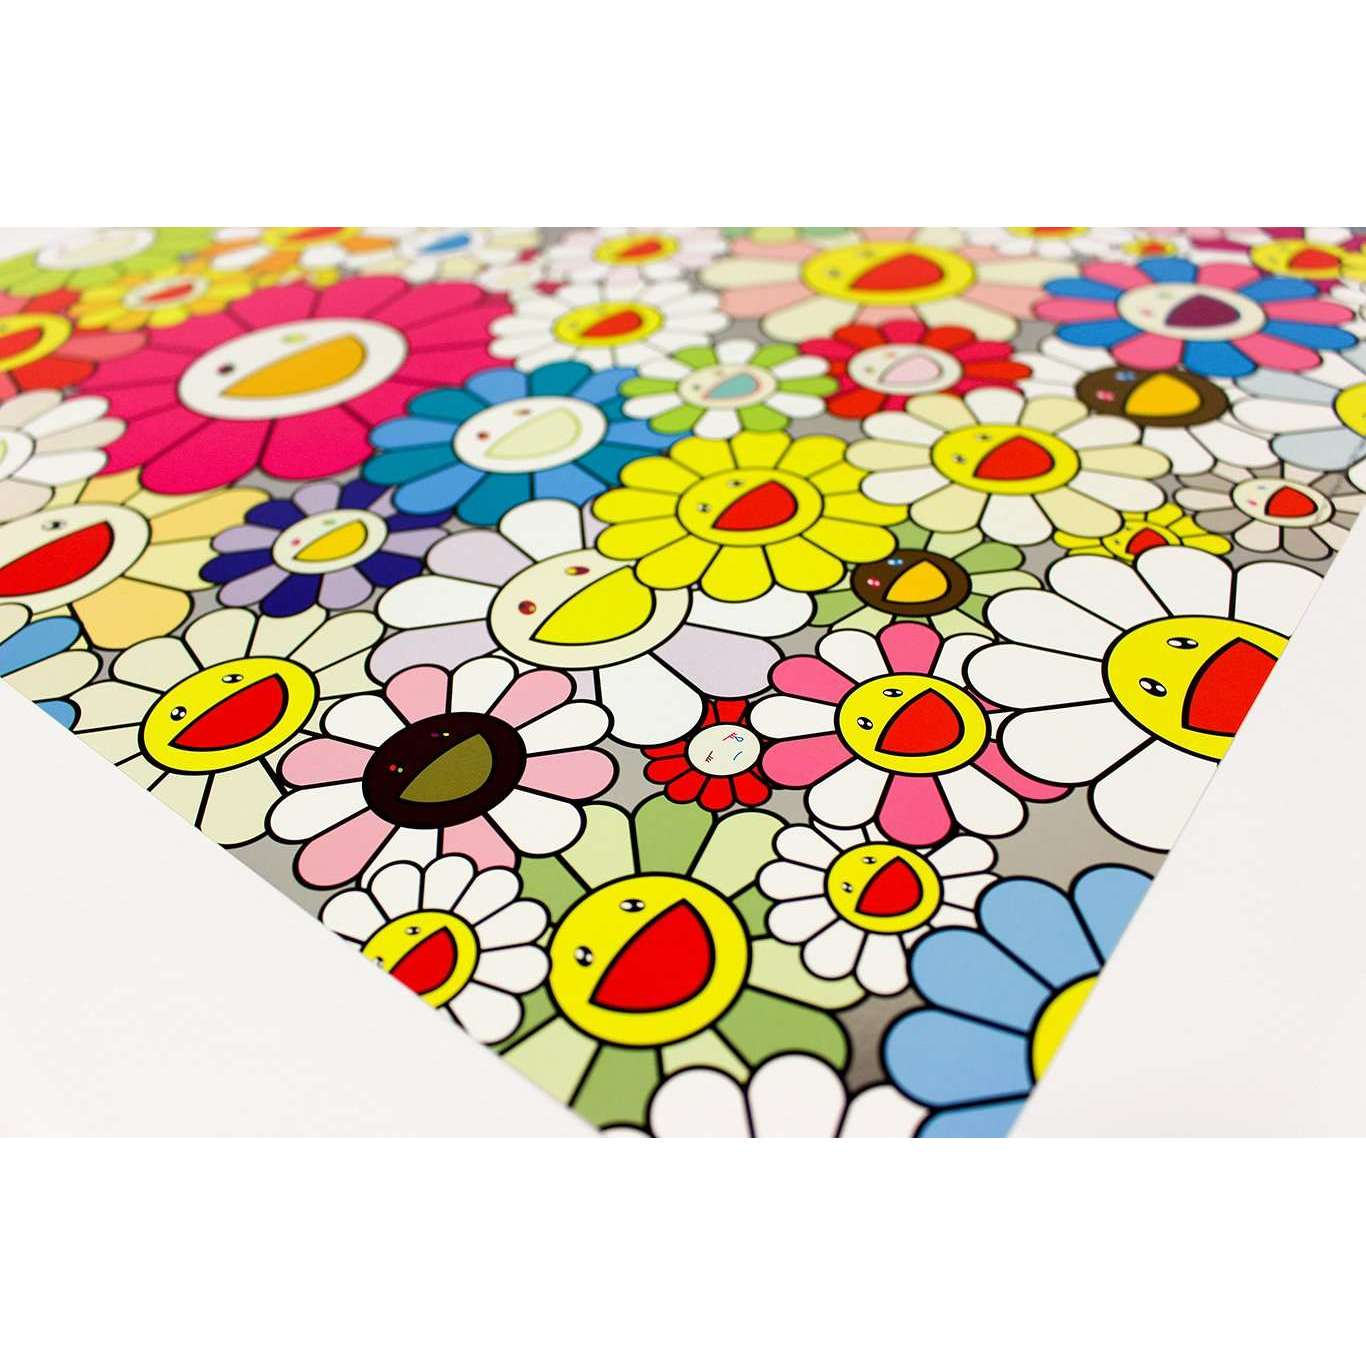 Takashi Murakami, Flowers From The Village of Ponkotan, 2011 | Lougher Contemporary